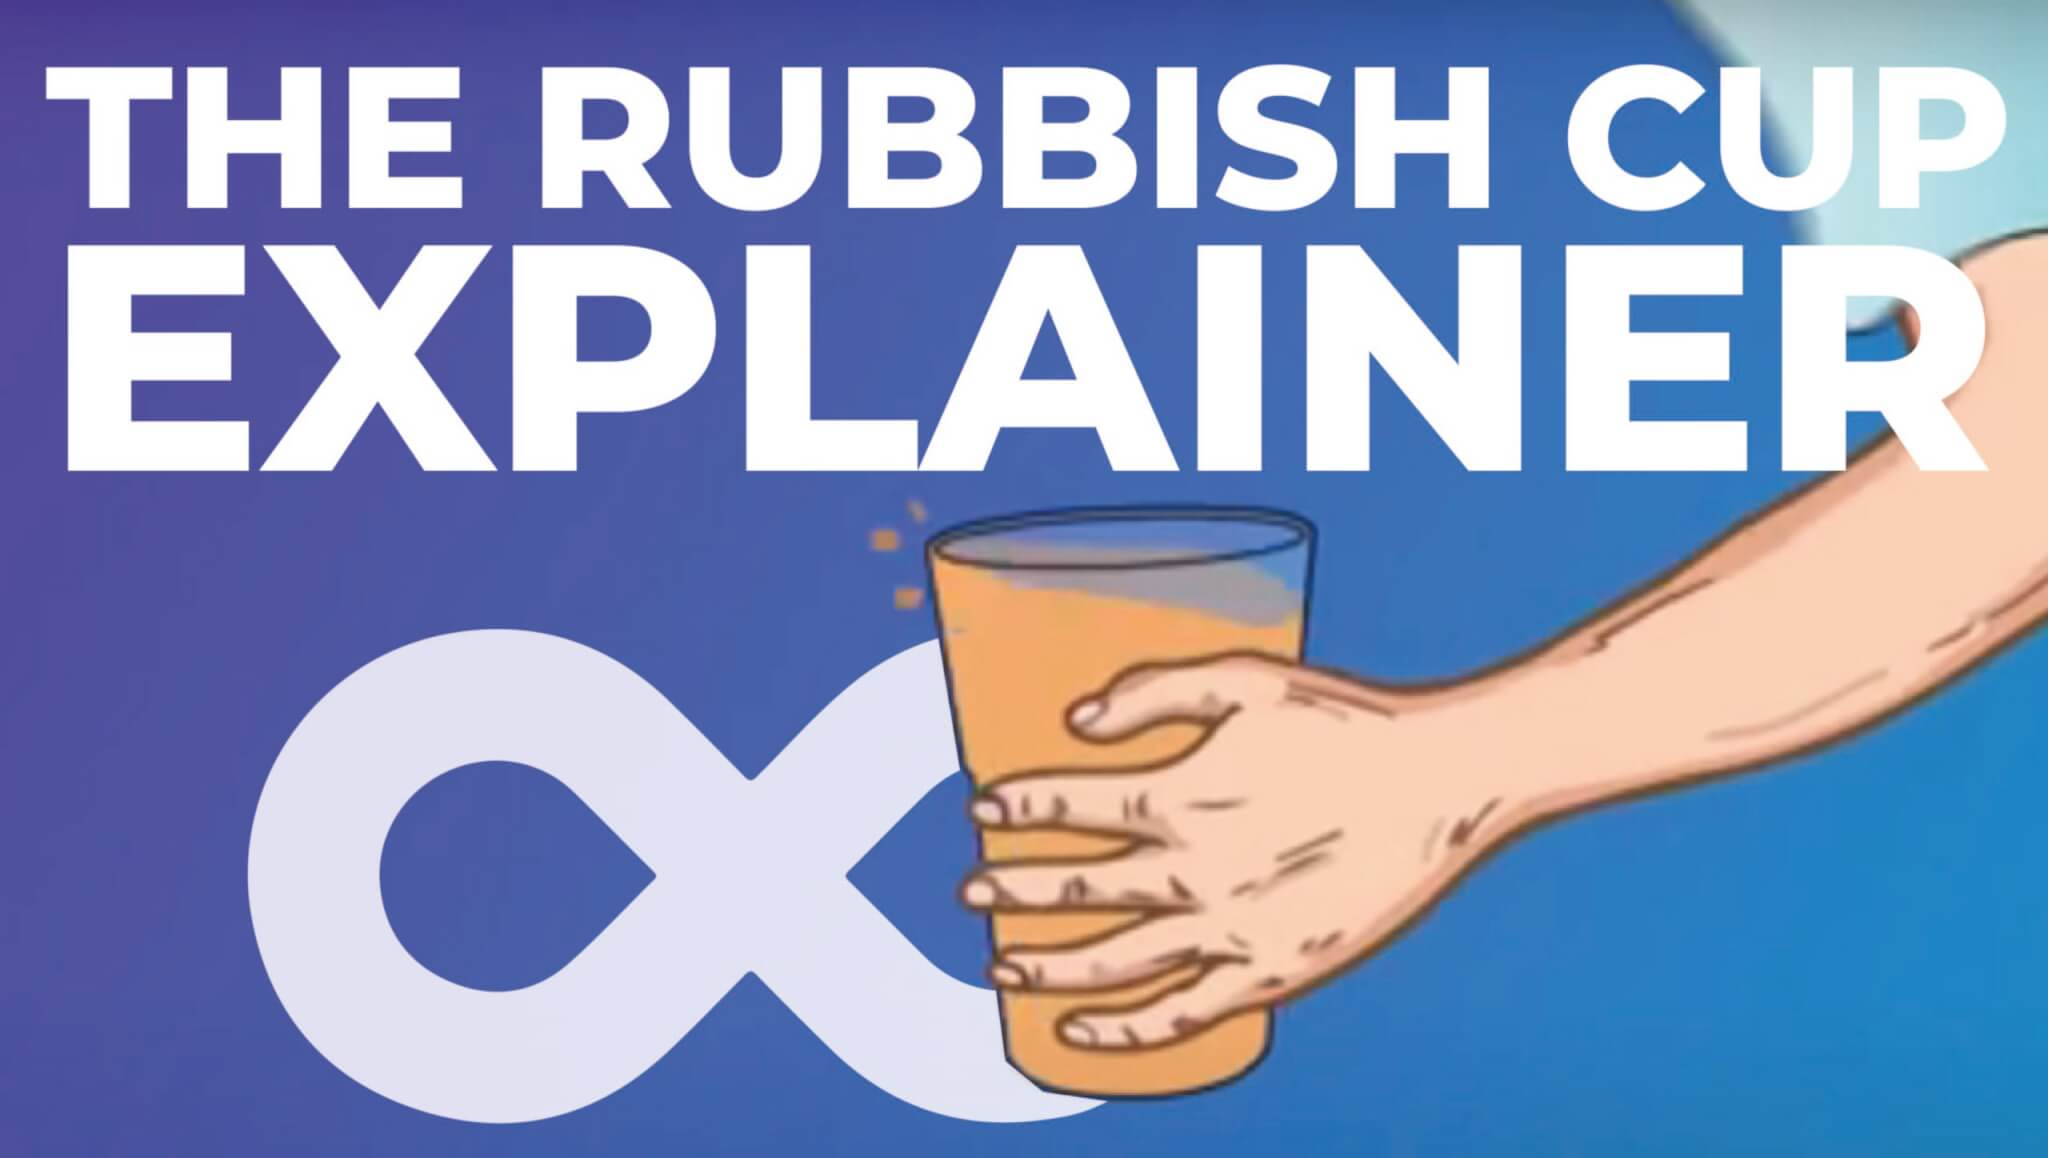 The Rubbish Cup Explainer Video